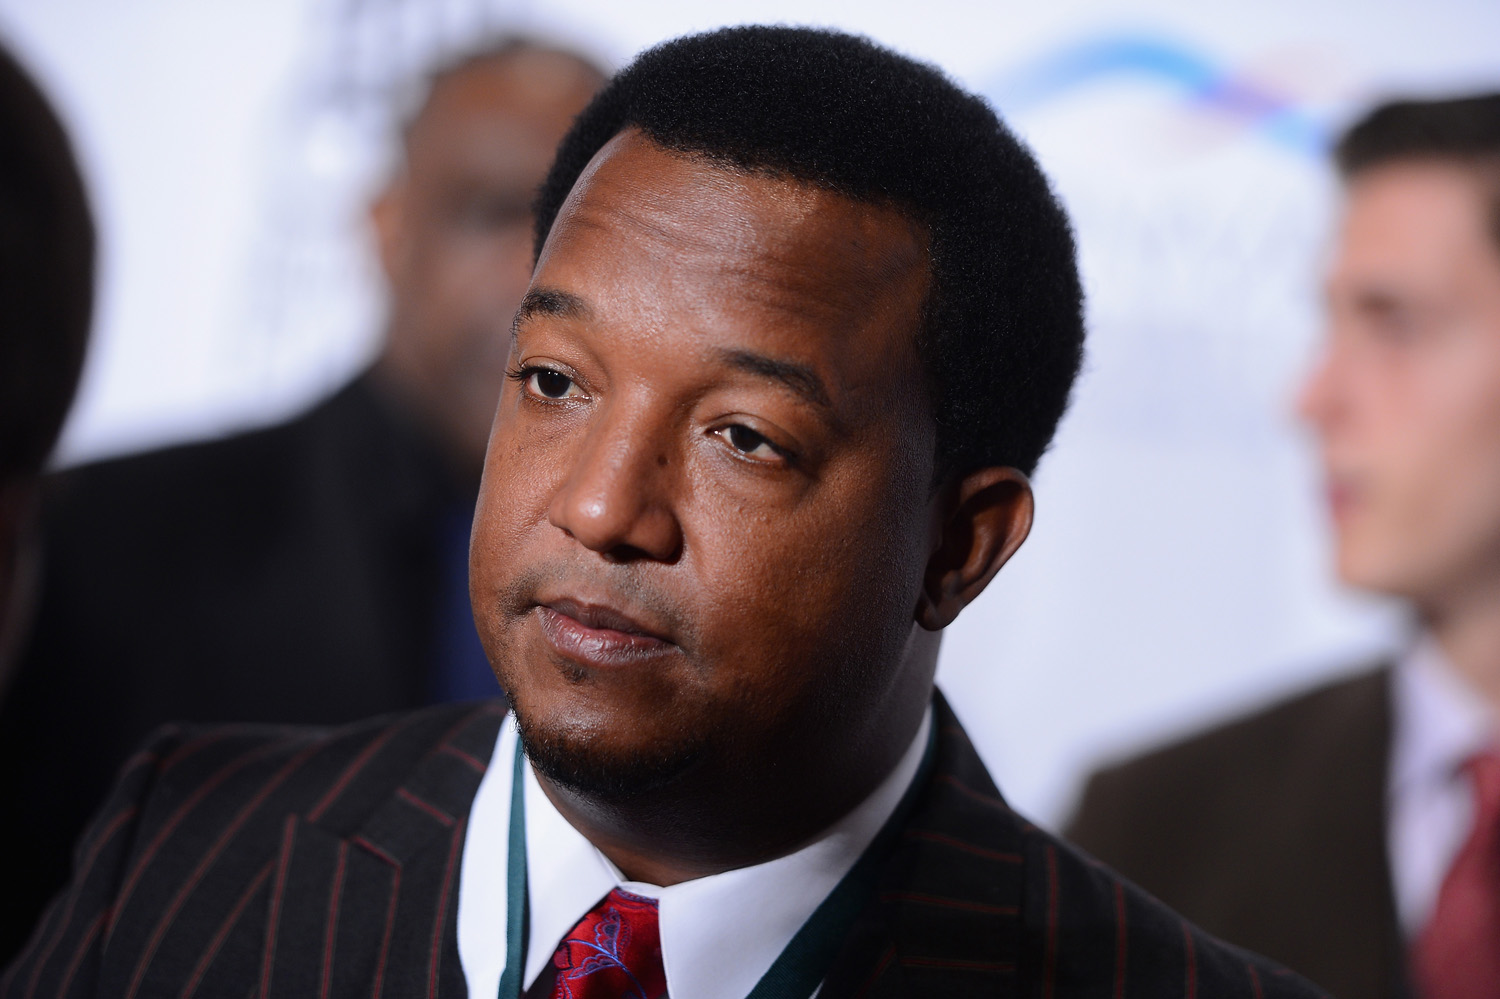 Former baseball player Pedro Martinez attends the 29th Annual Great Sports Legends Dinner to benefit The Buoniconti Fund to Cure Paralysis in New York City on September 29, 2014.